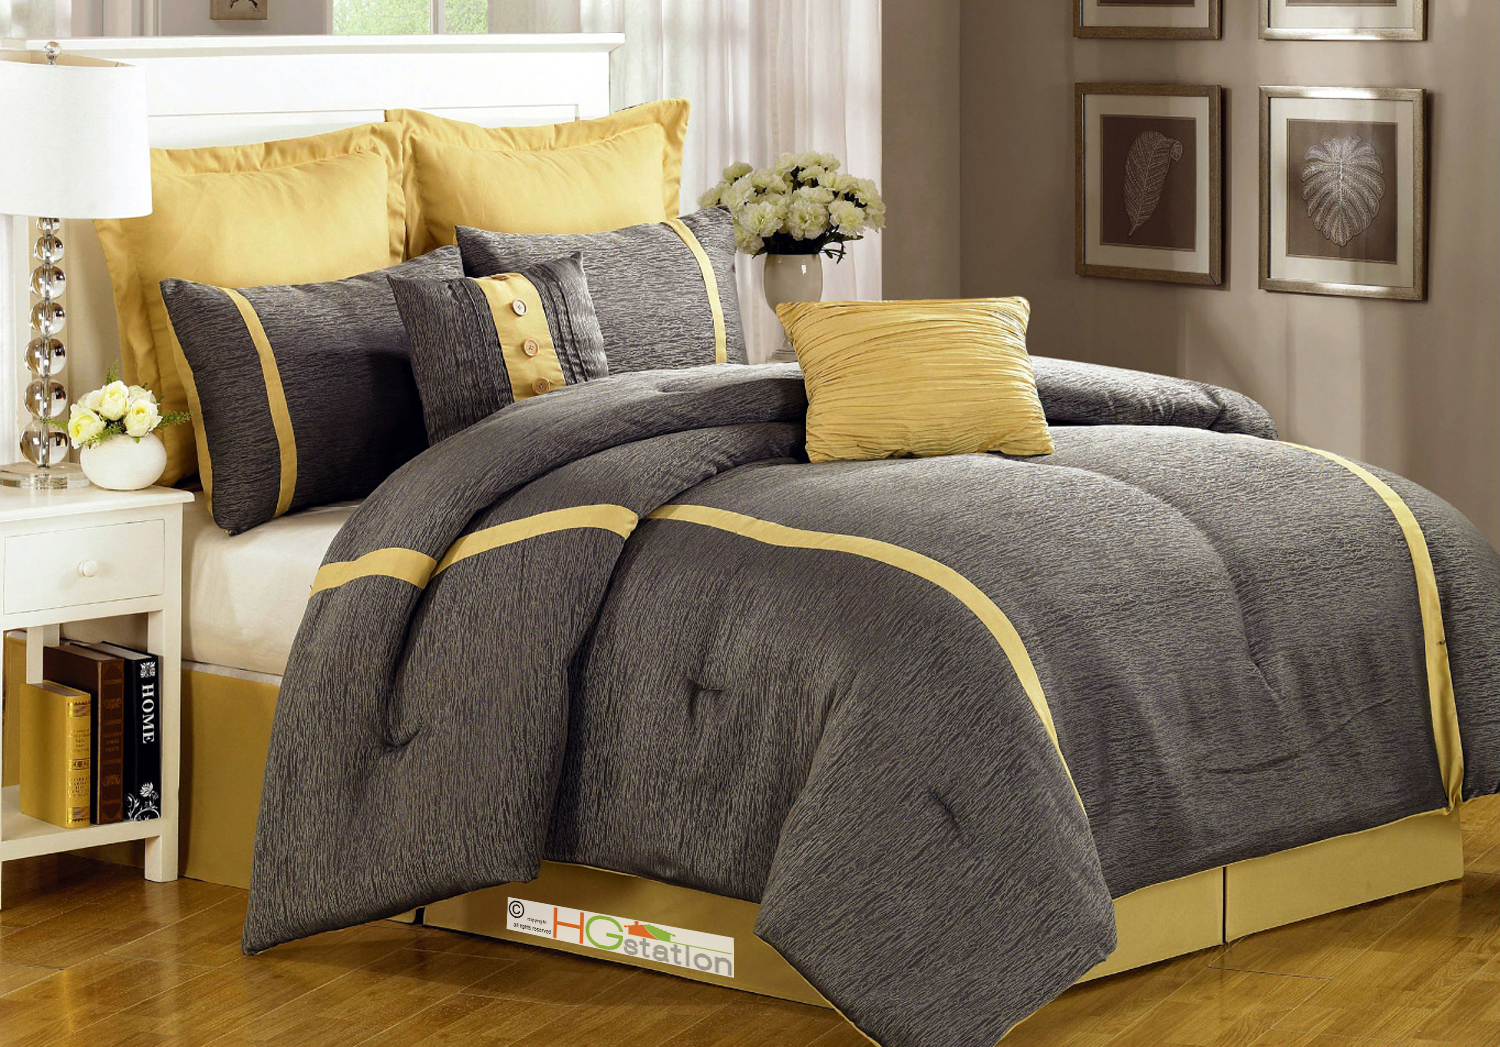 8 pc animal skin texture striped jacquard comforter set gray silver yellow queen ebay. Black Bedroom Furniture Sets. Home Design Ideas